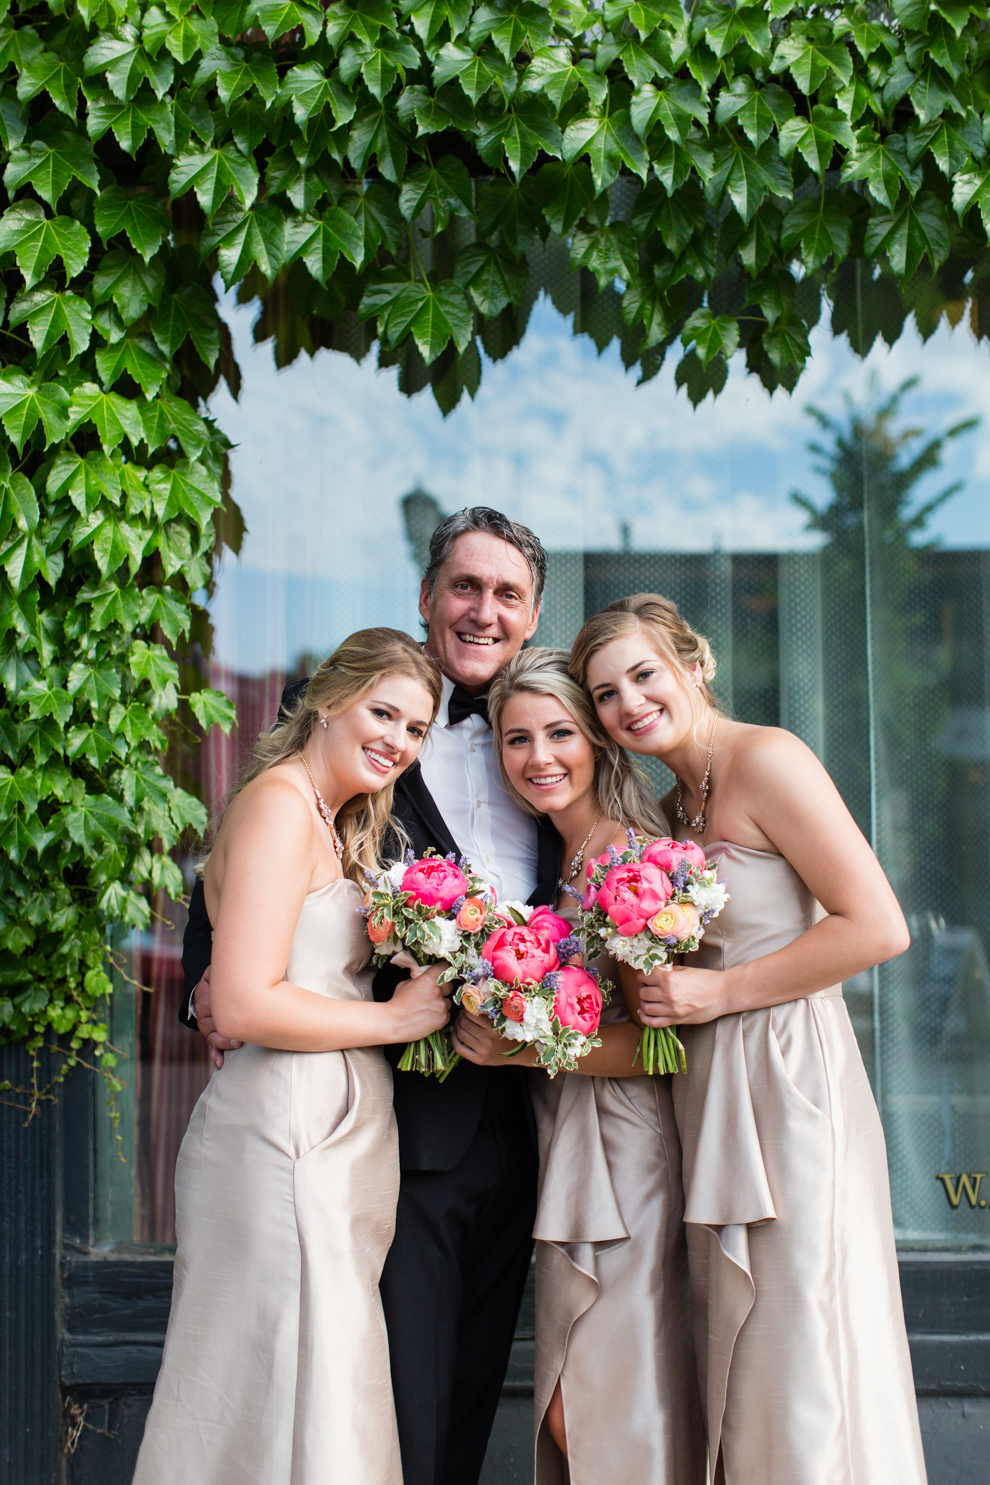 061816_Mike_Lori_Wedding_fotofilmstudios_038